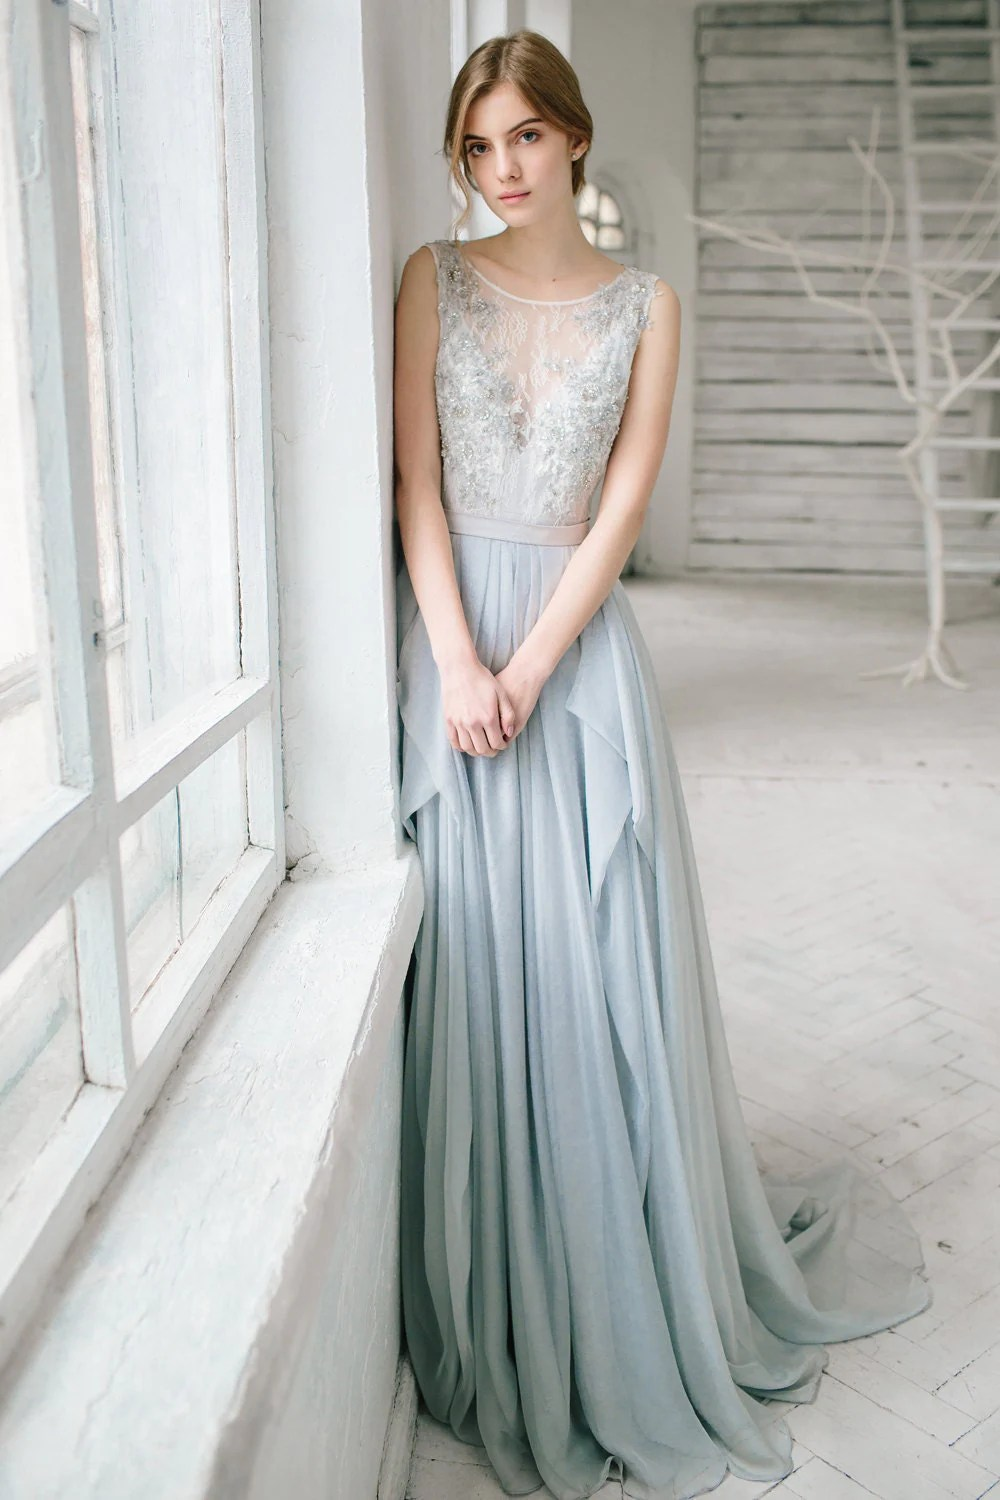 silver grey wedding dress lobelia silver wedding dresses Silver grey wedding dress Lobelia zoom